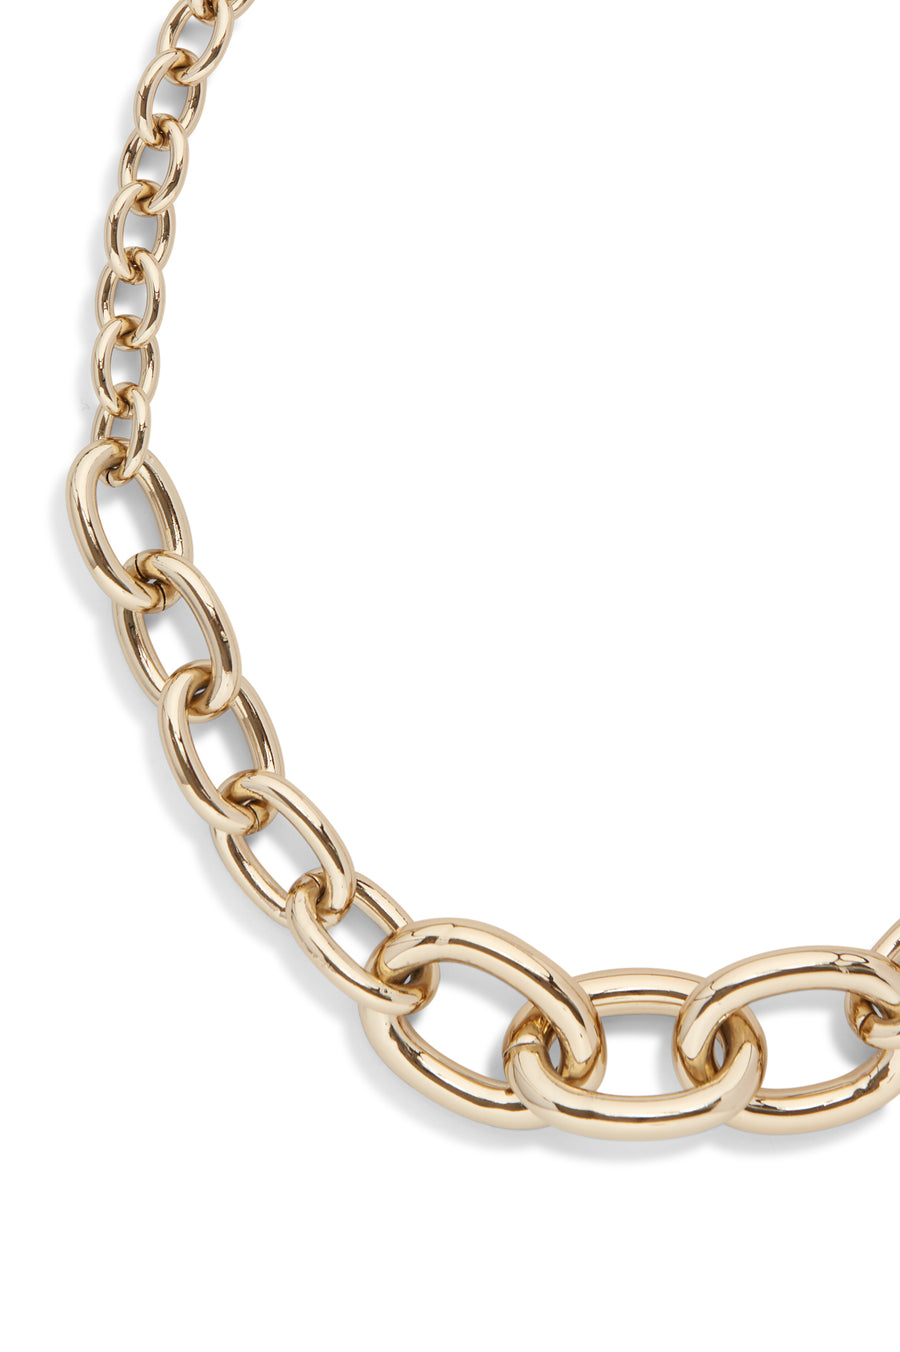 Constructed from gold chain hardware, the necklace features three statement links.